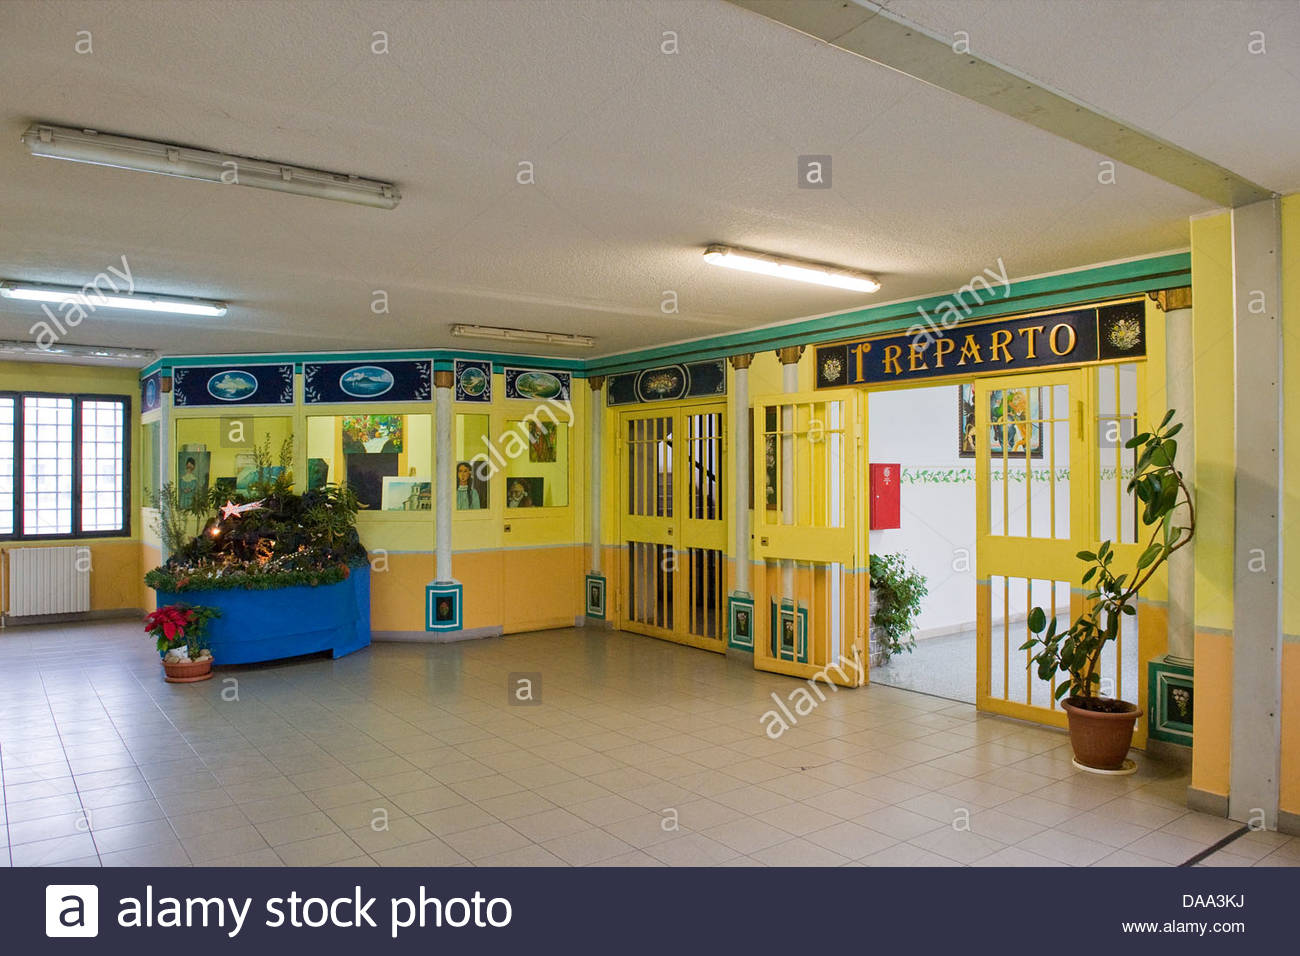 First ward,bollate penitentiary,italy - Stock Image